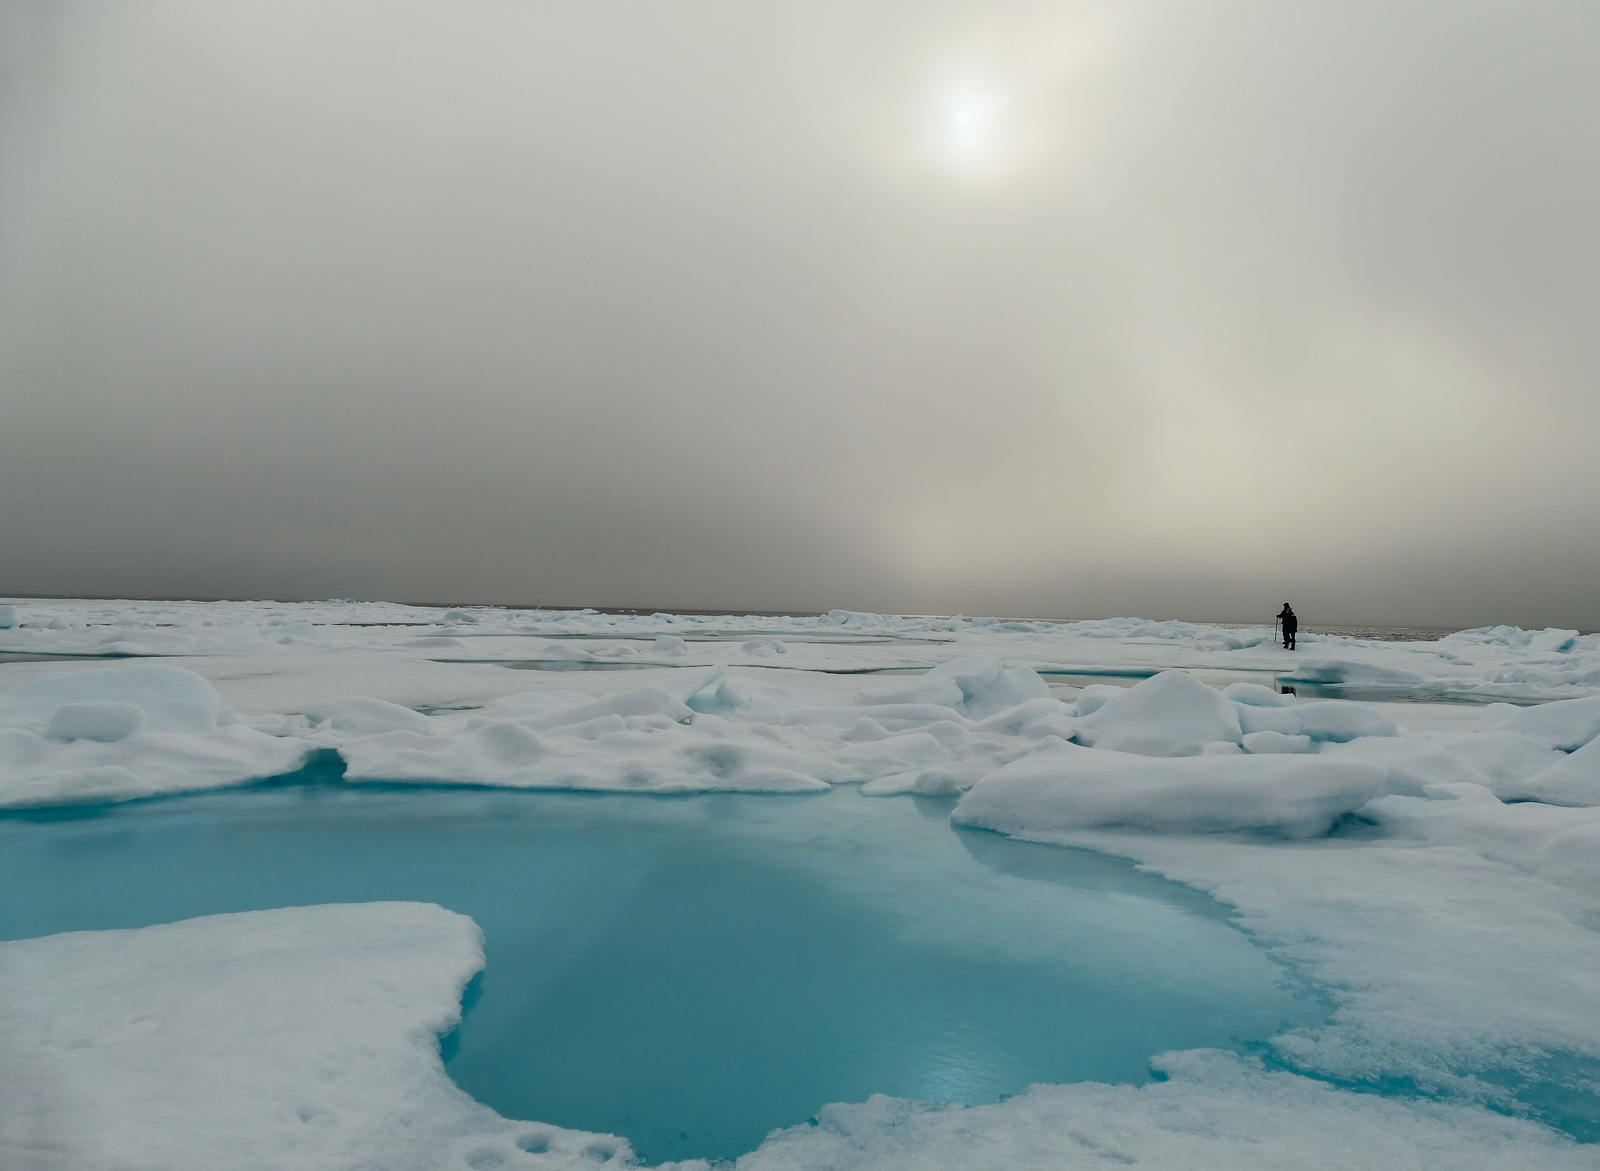 Walking on the Arctic ice is a surreal experience.